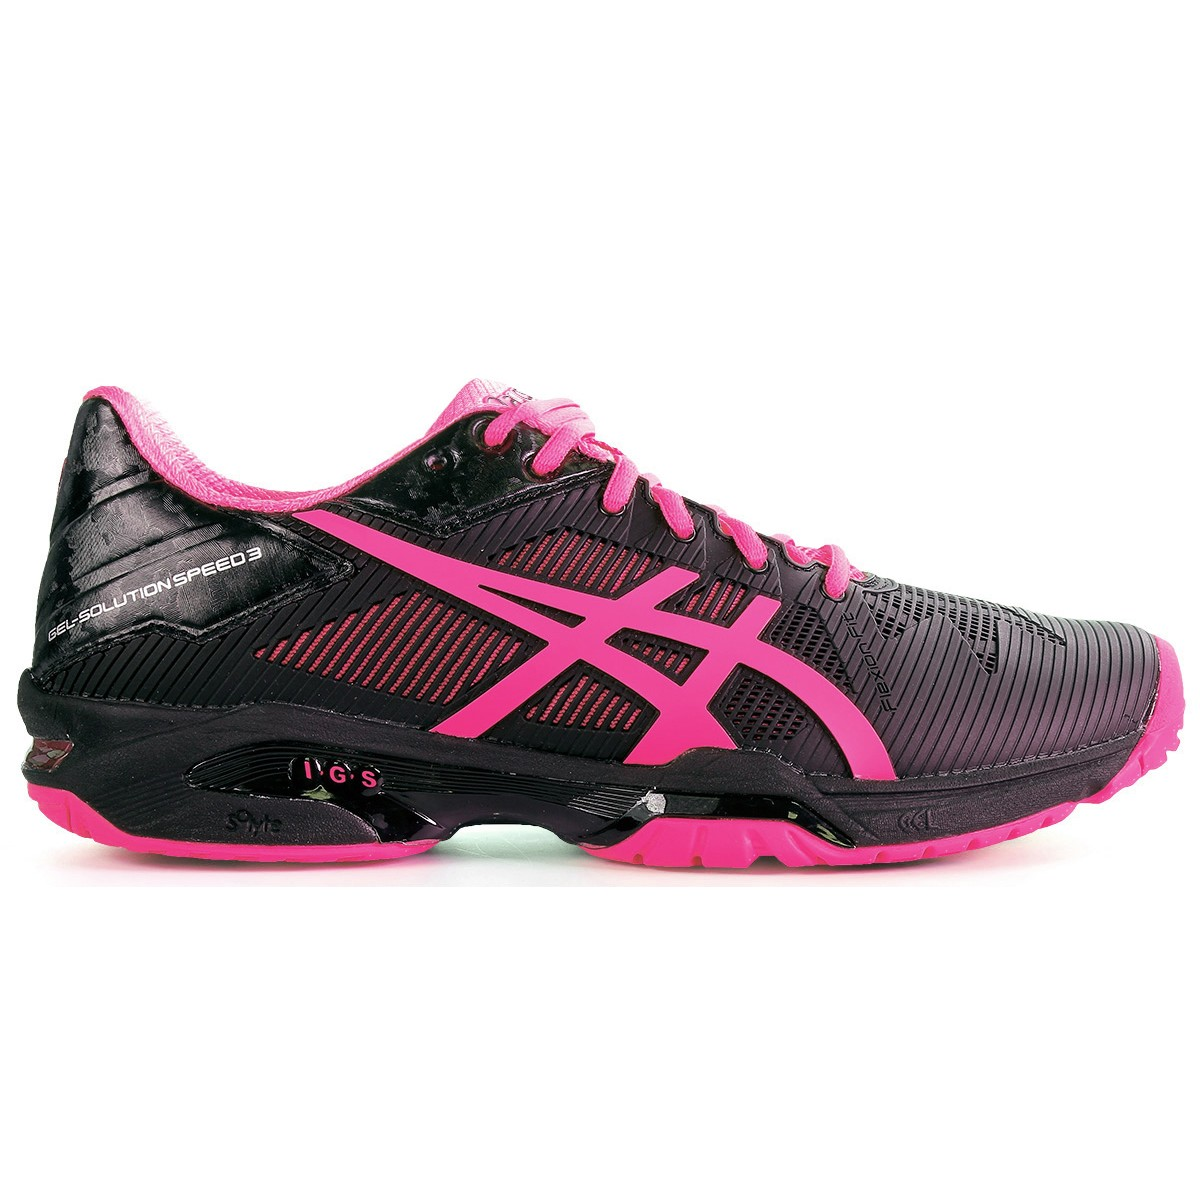 CHAUSSURES ASICS FEMME GEL SOLUTION SPEED 3 TOUTES SURFACES